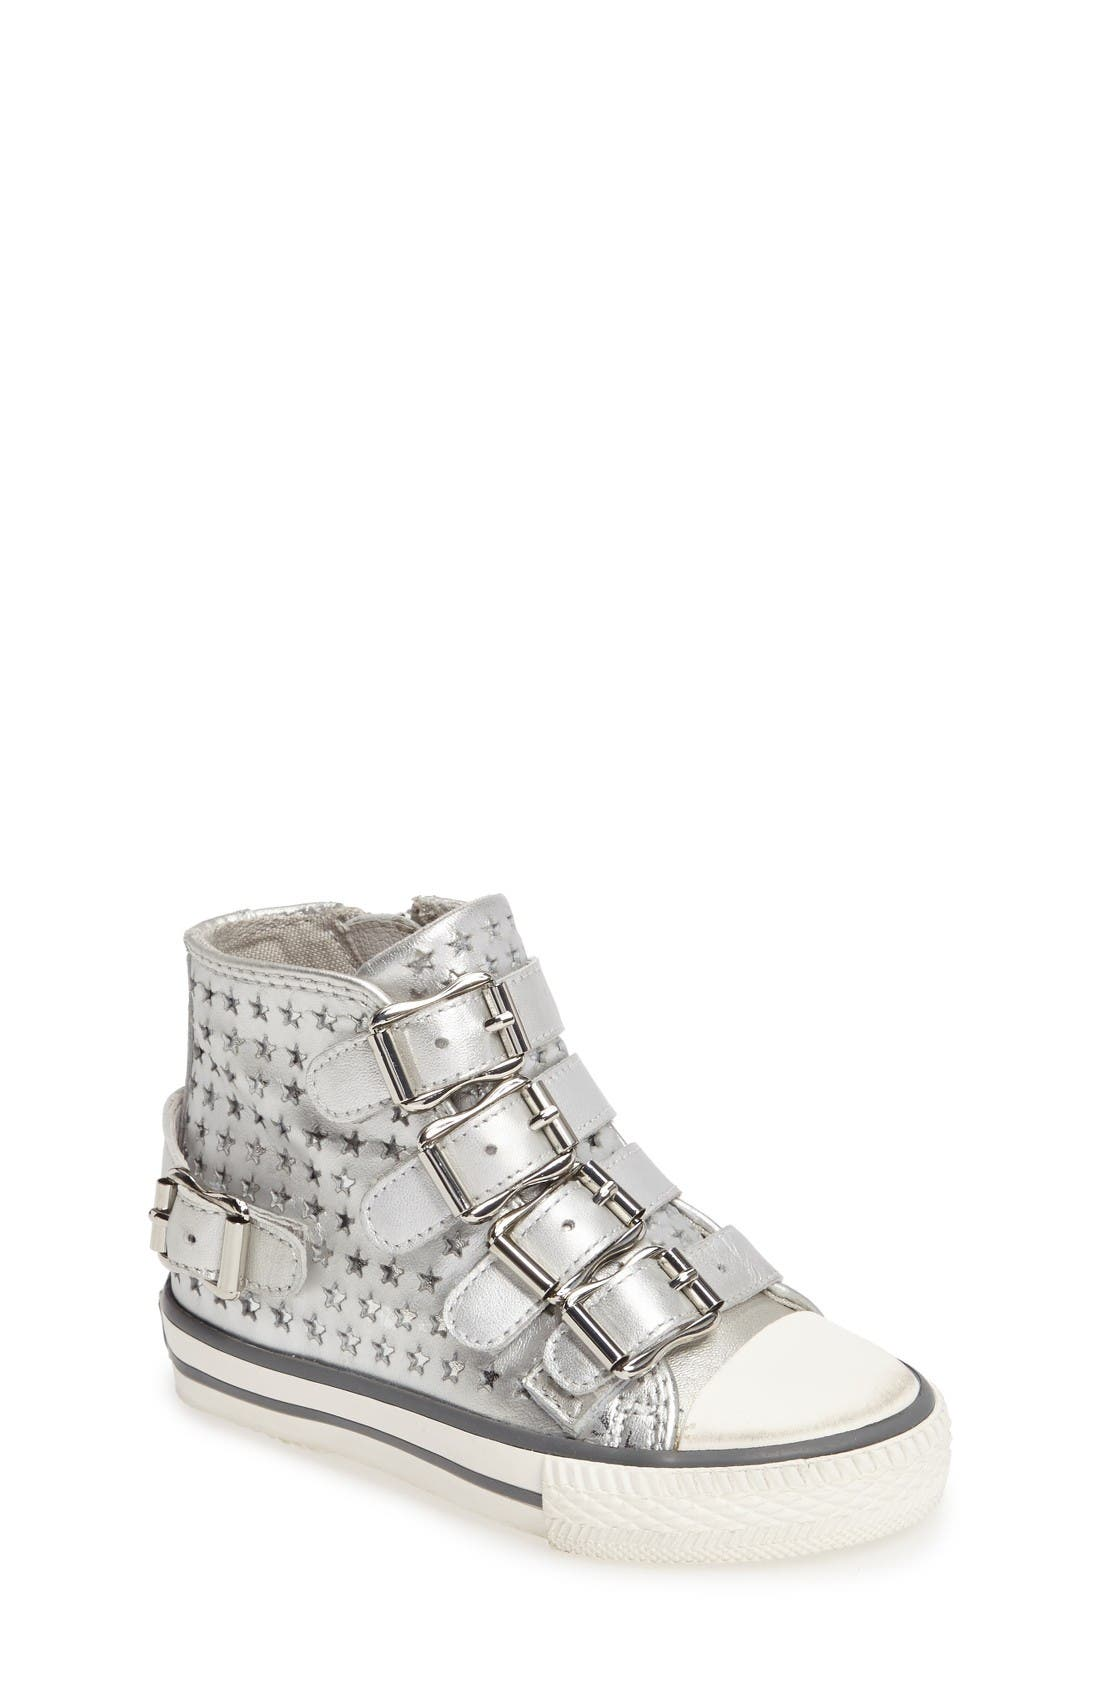 Vava Starboss Buckle Strap High Top Sneaker,                         Main,                         color, Silver Metallic Leather